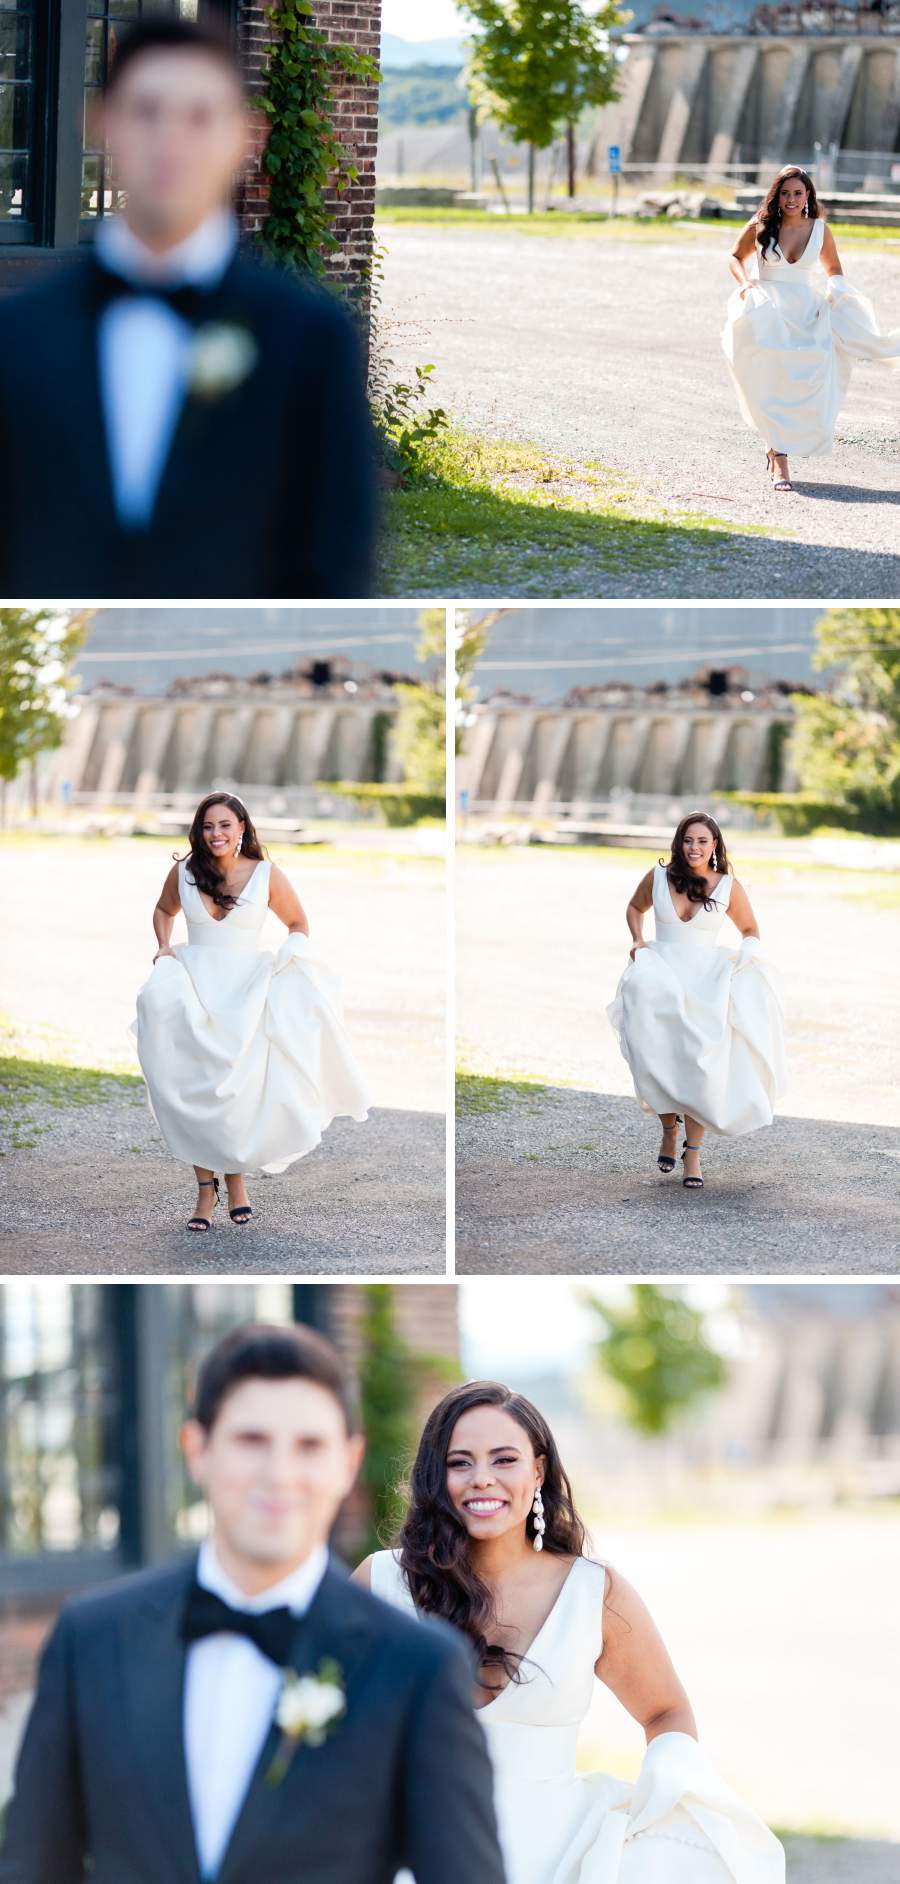 Wedding first look - photos by Casey Fatchett - https://fatchett.com